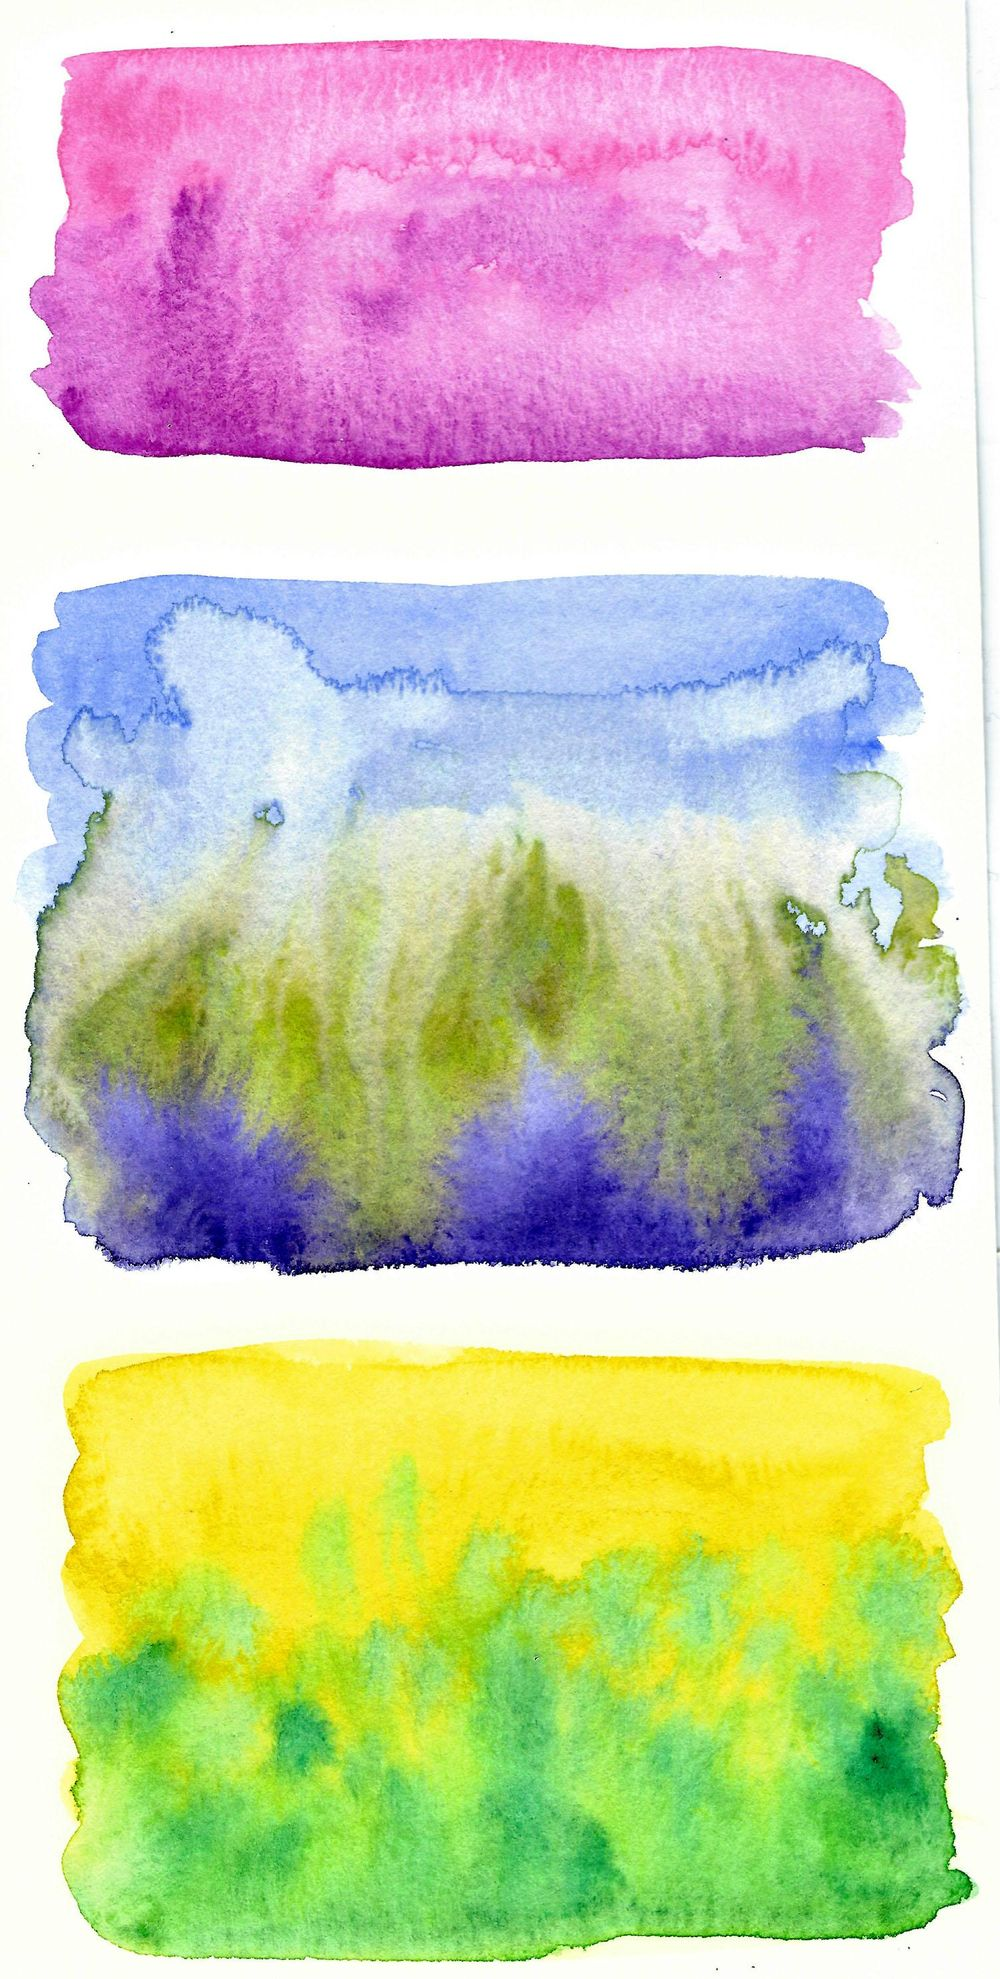 Beautiful Watercolor Texture - image 2 - student project